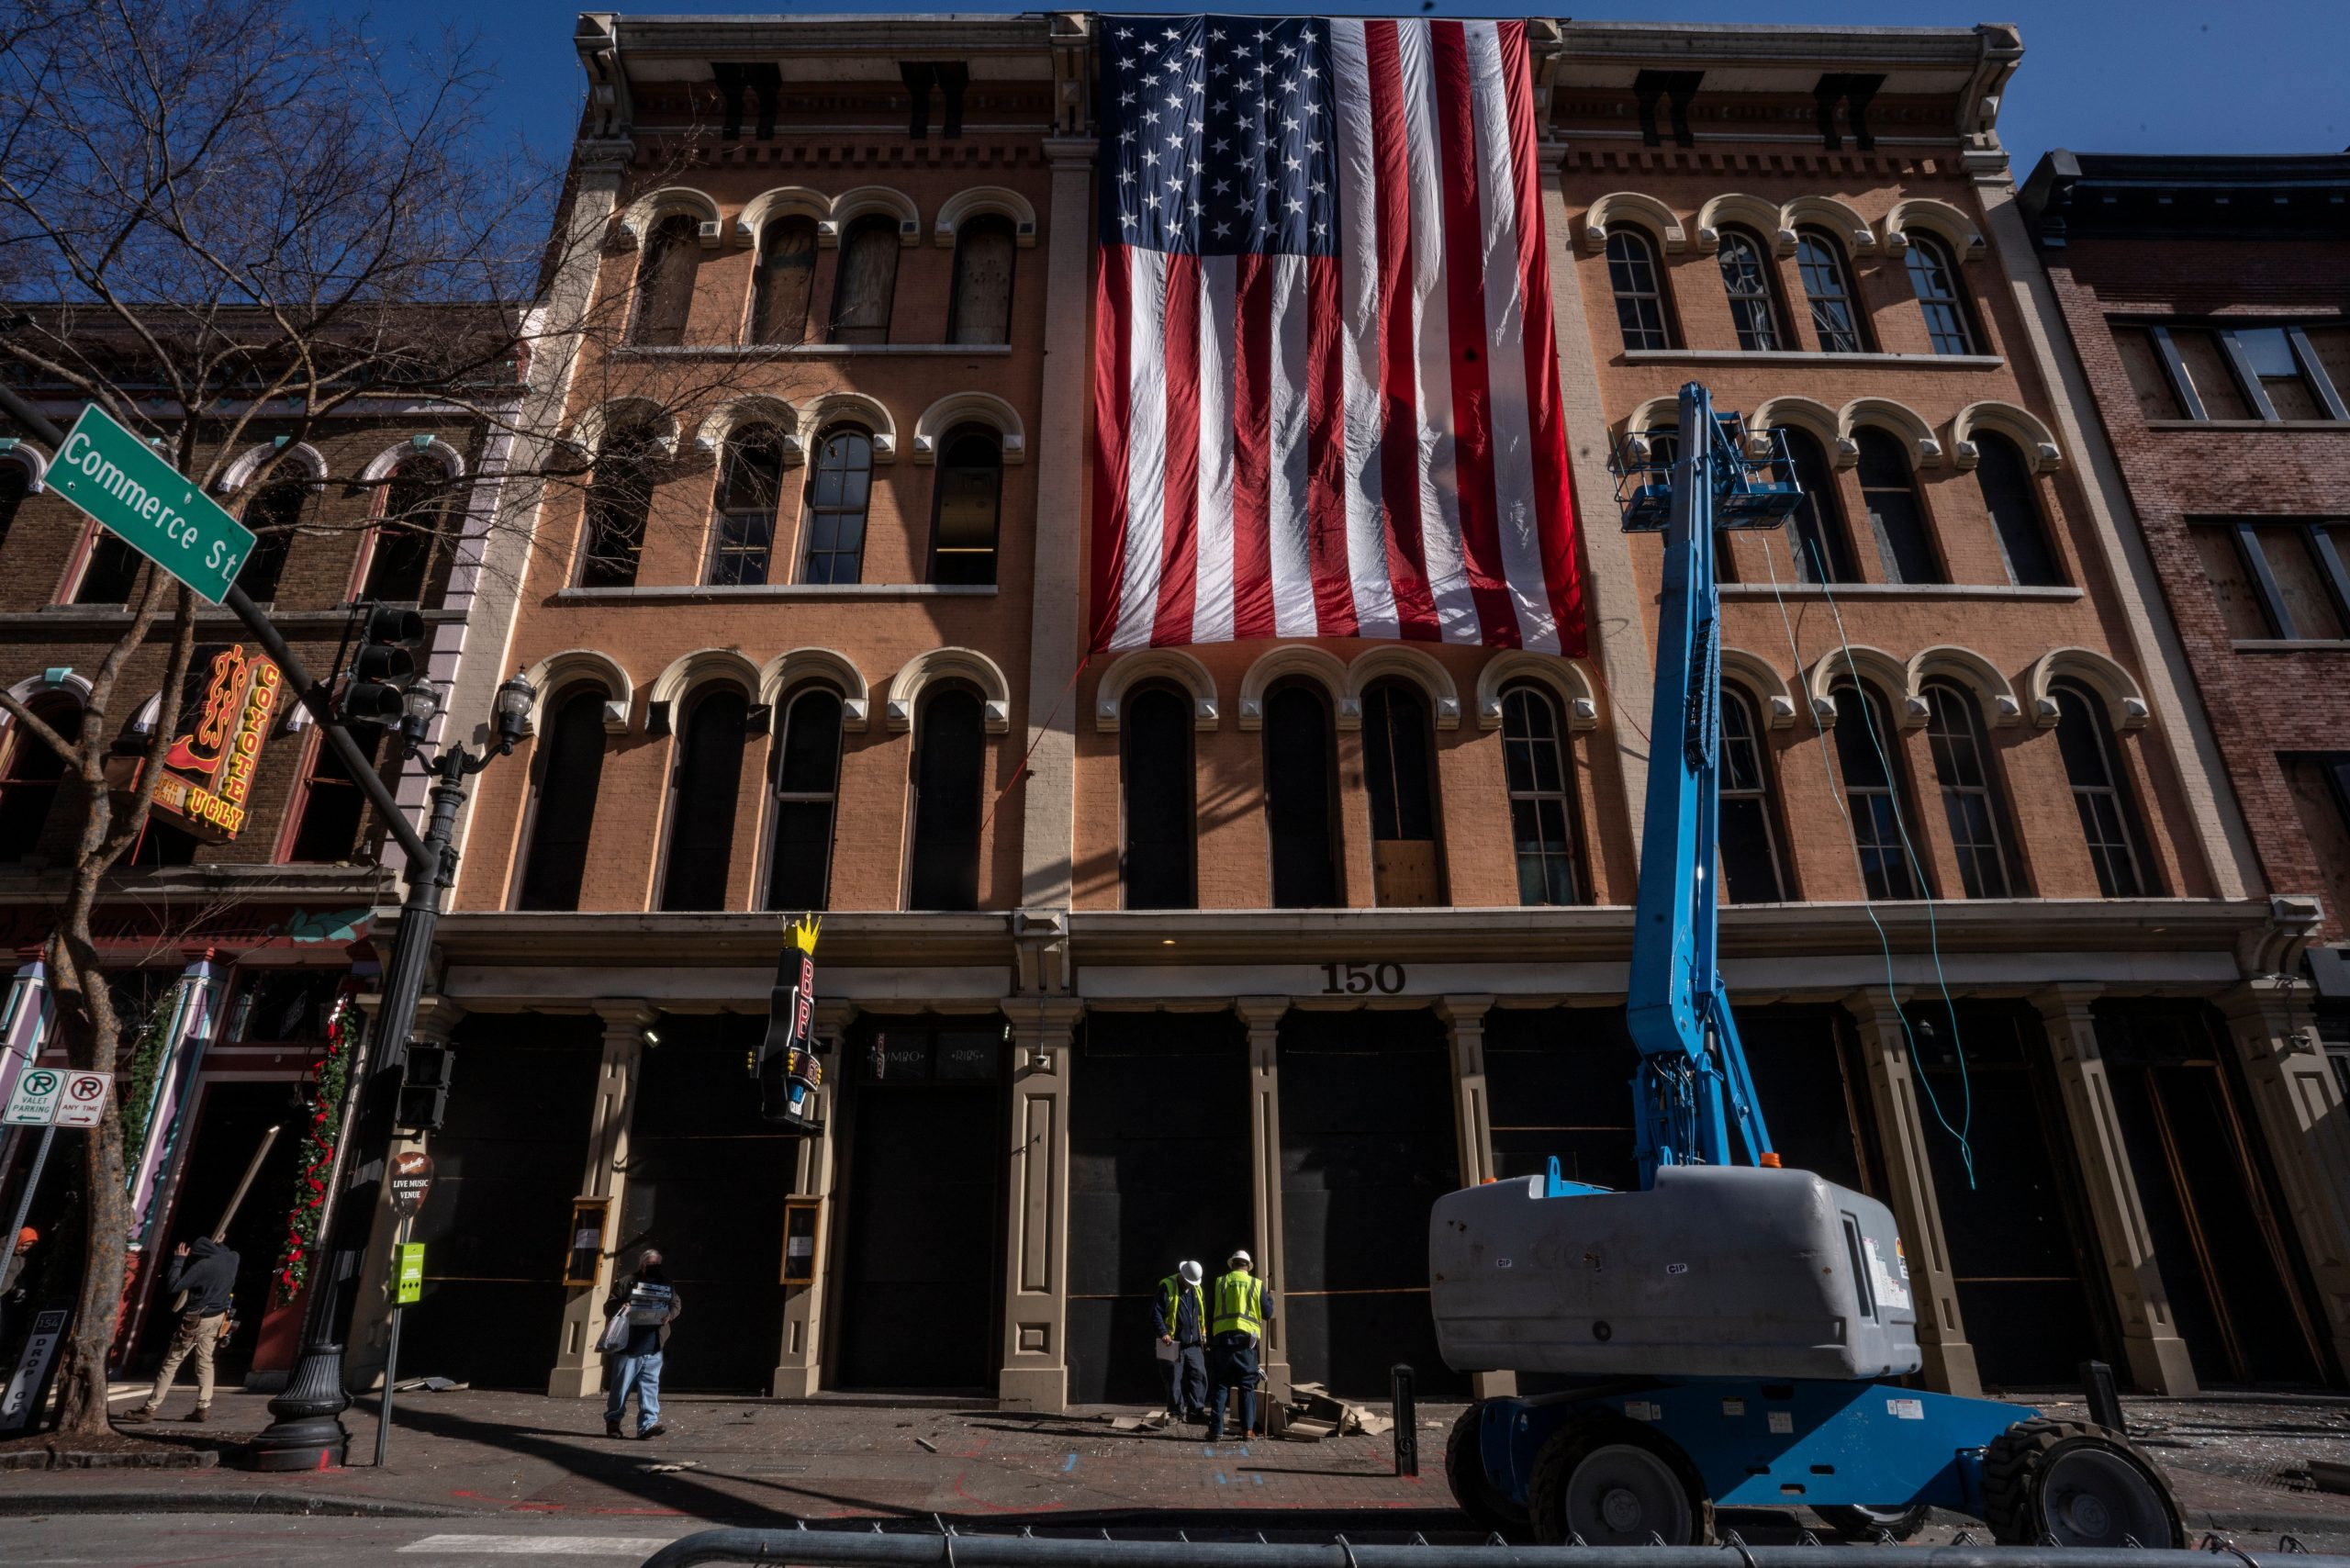 A huge American flag was draped from an undamaged building on Jan. 4, 2021. (Photo: John Partipilo)